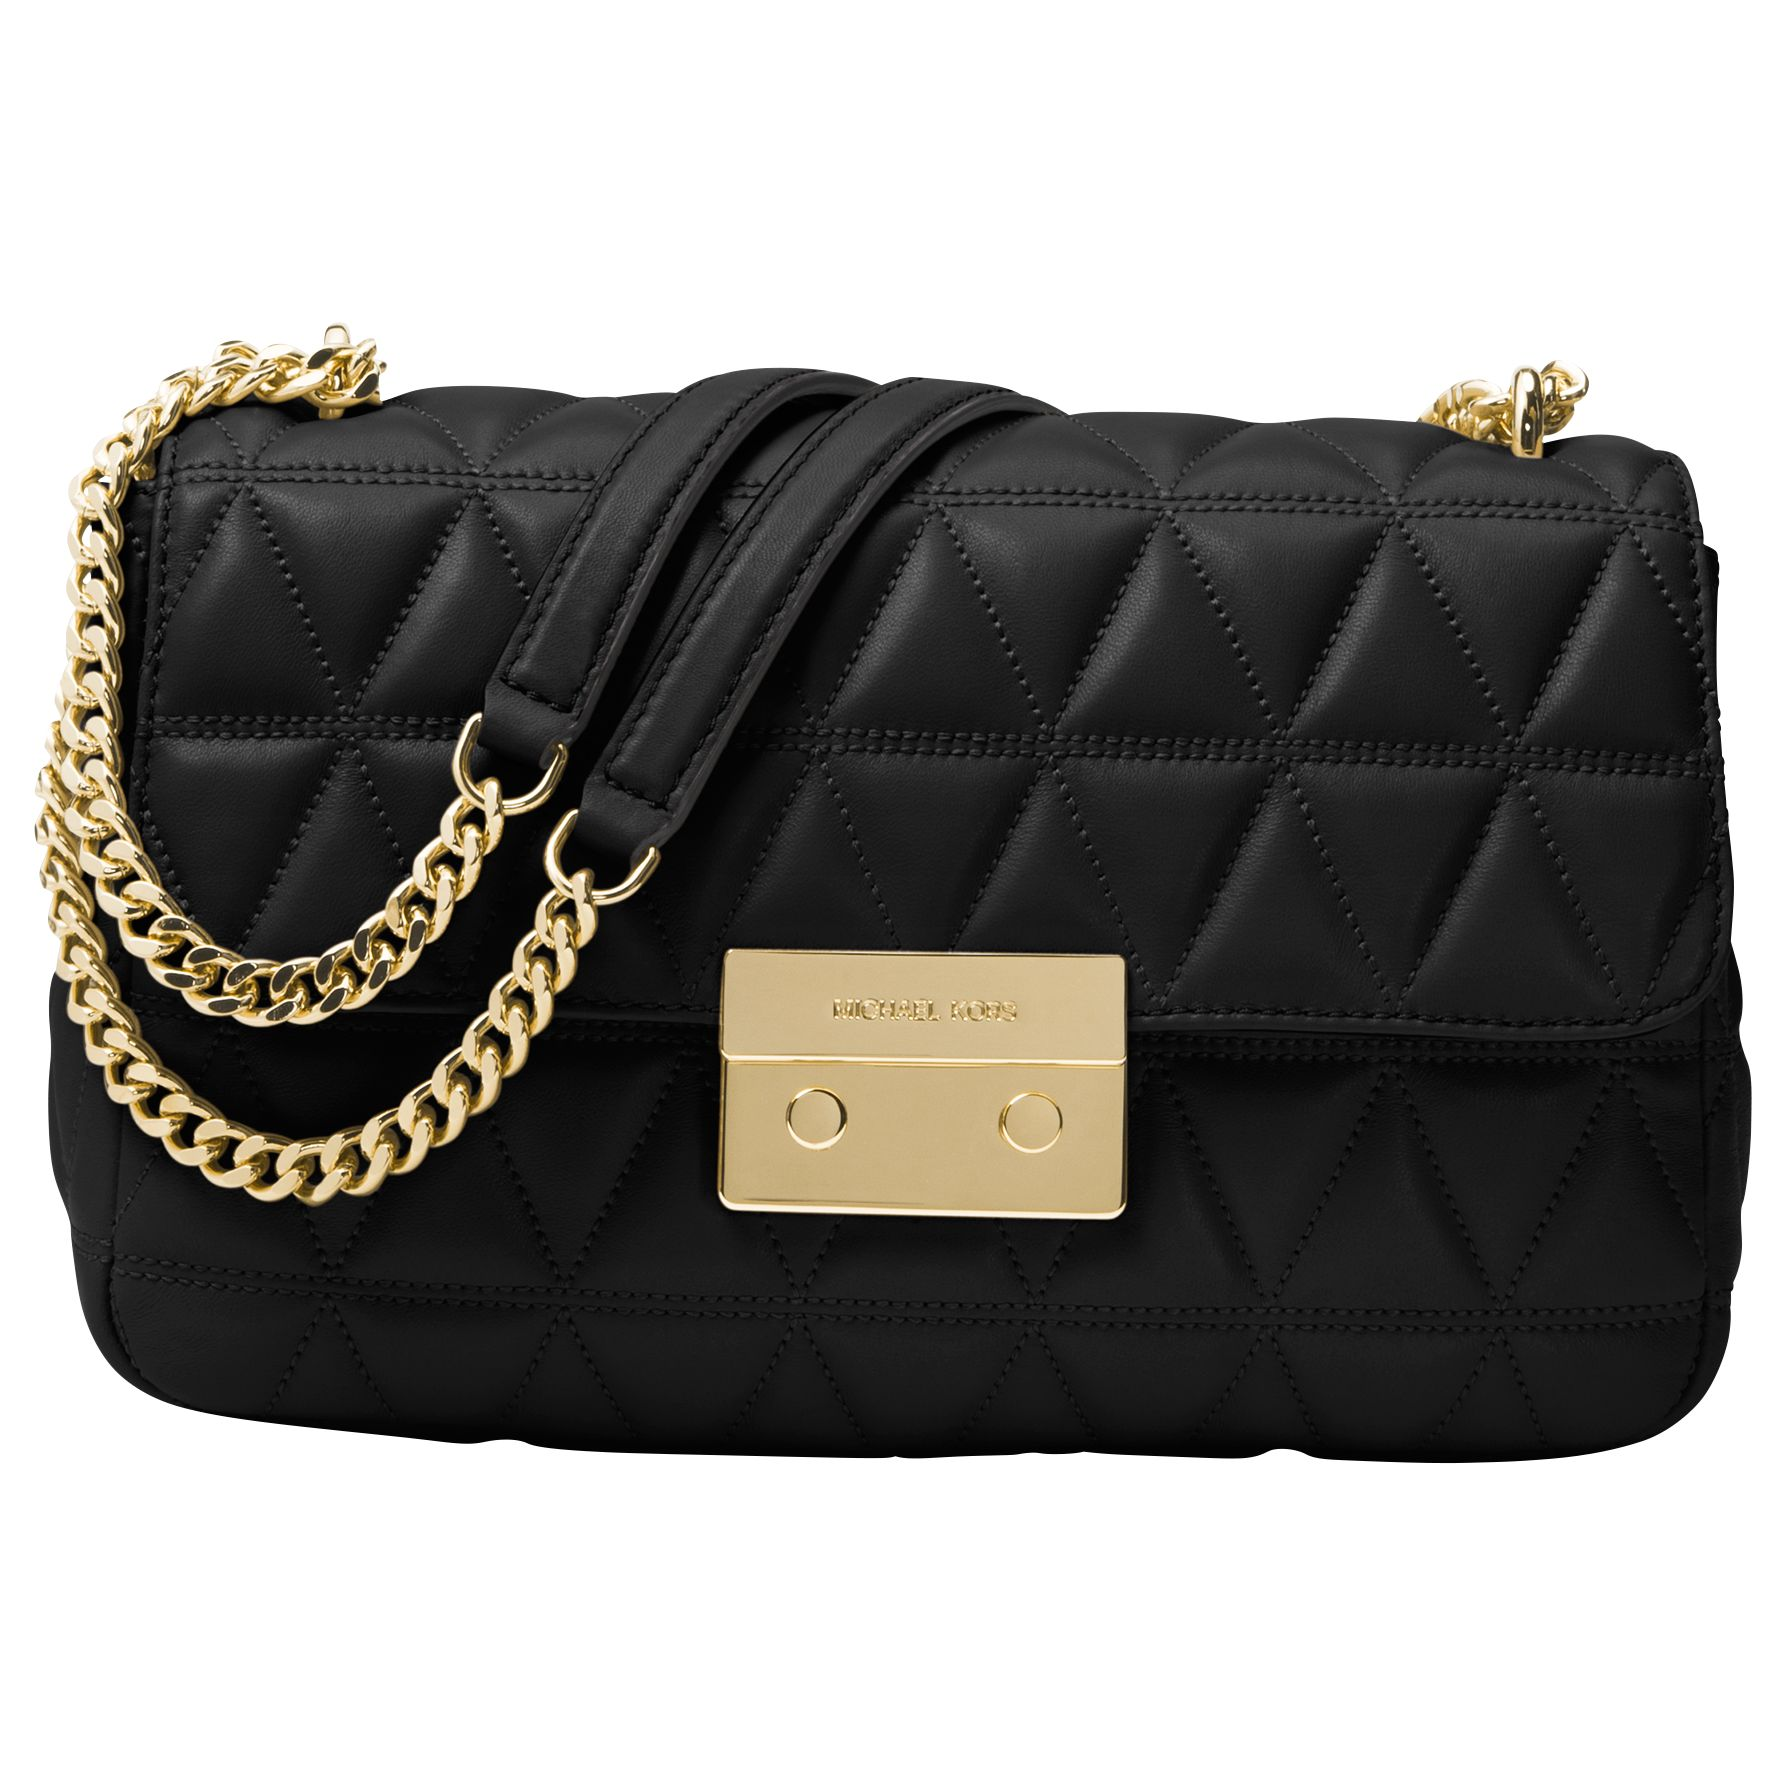 31465ef0a3ef10 MICHAEL Michael Kors Sloan Leather Long Chain Shoulder Bag, Black at John  Lewis & Partners